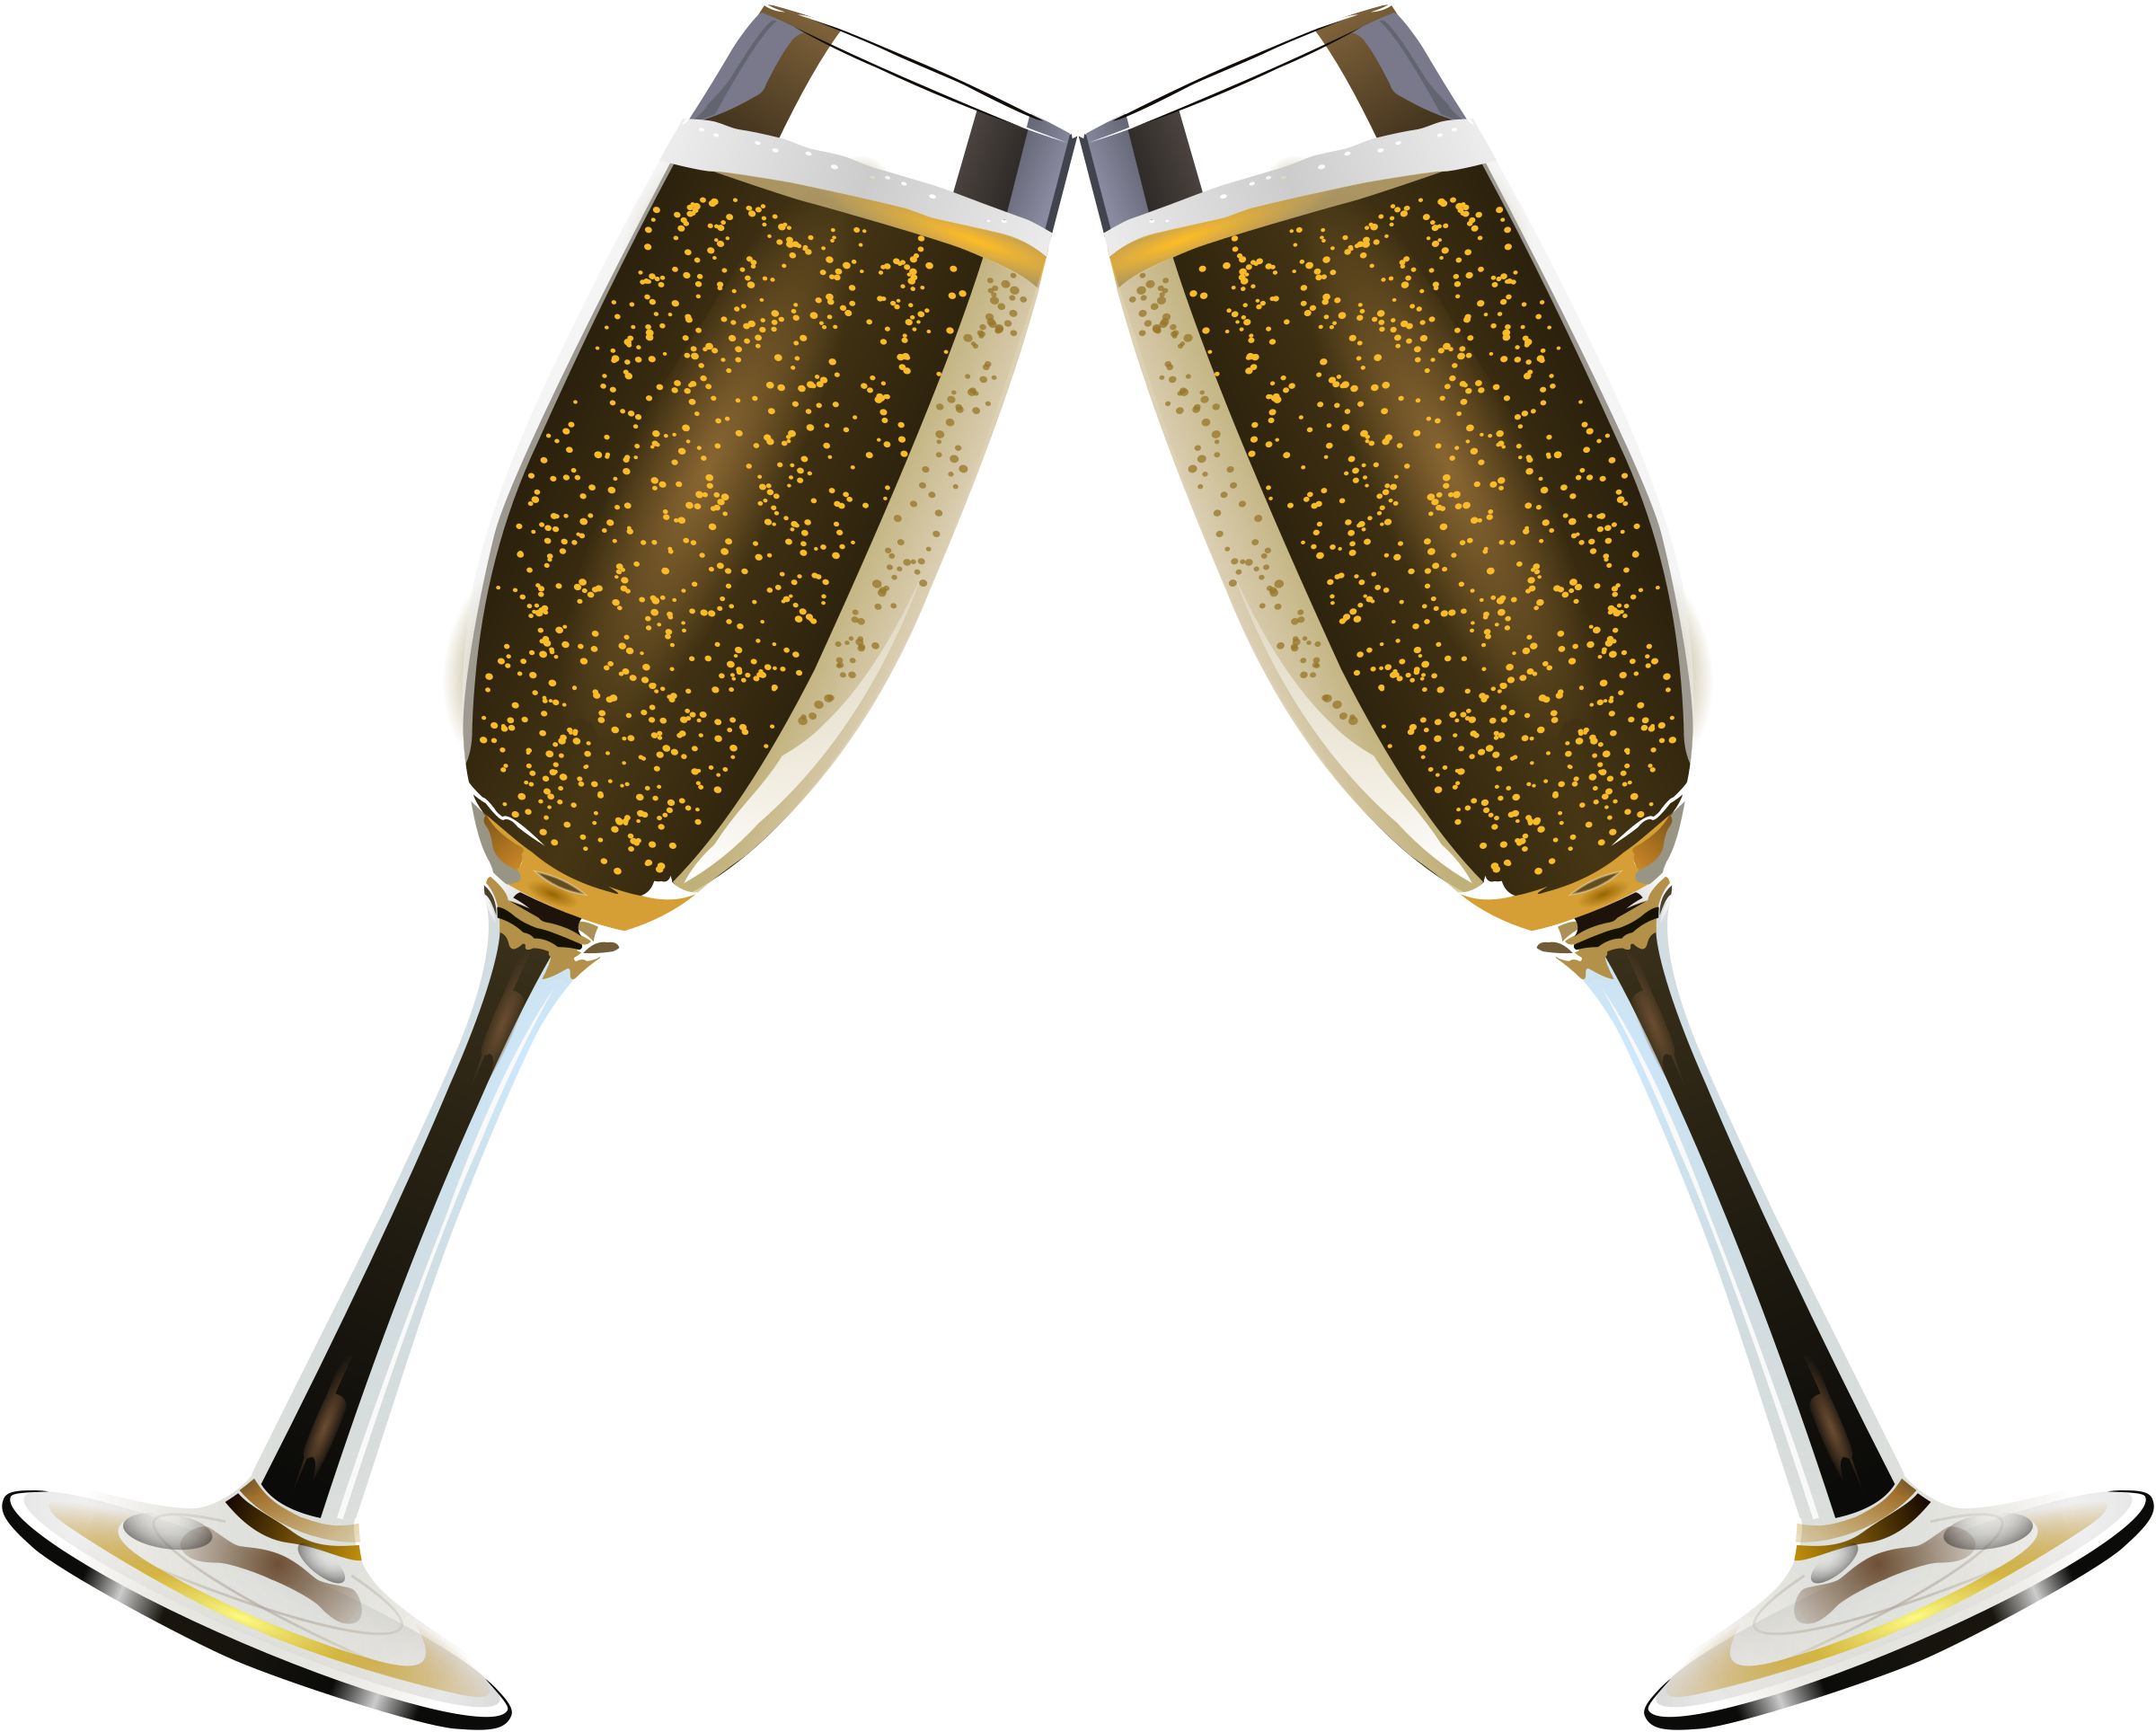 Champaign clipart champagne flute. Png transparent images all